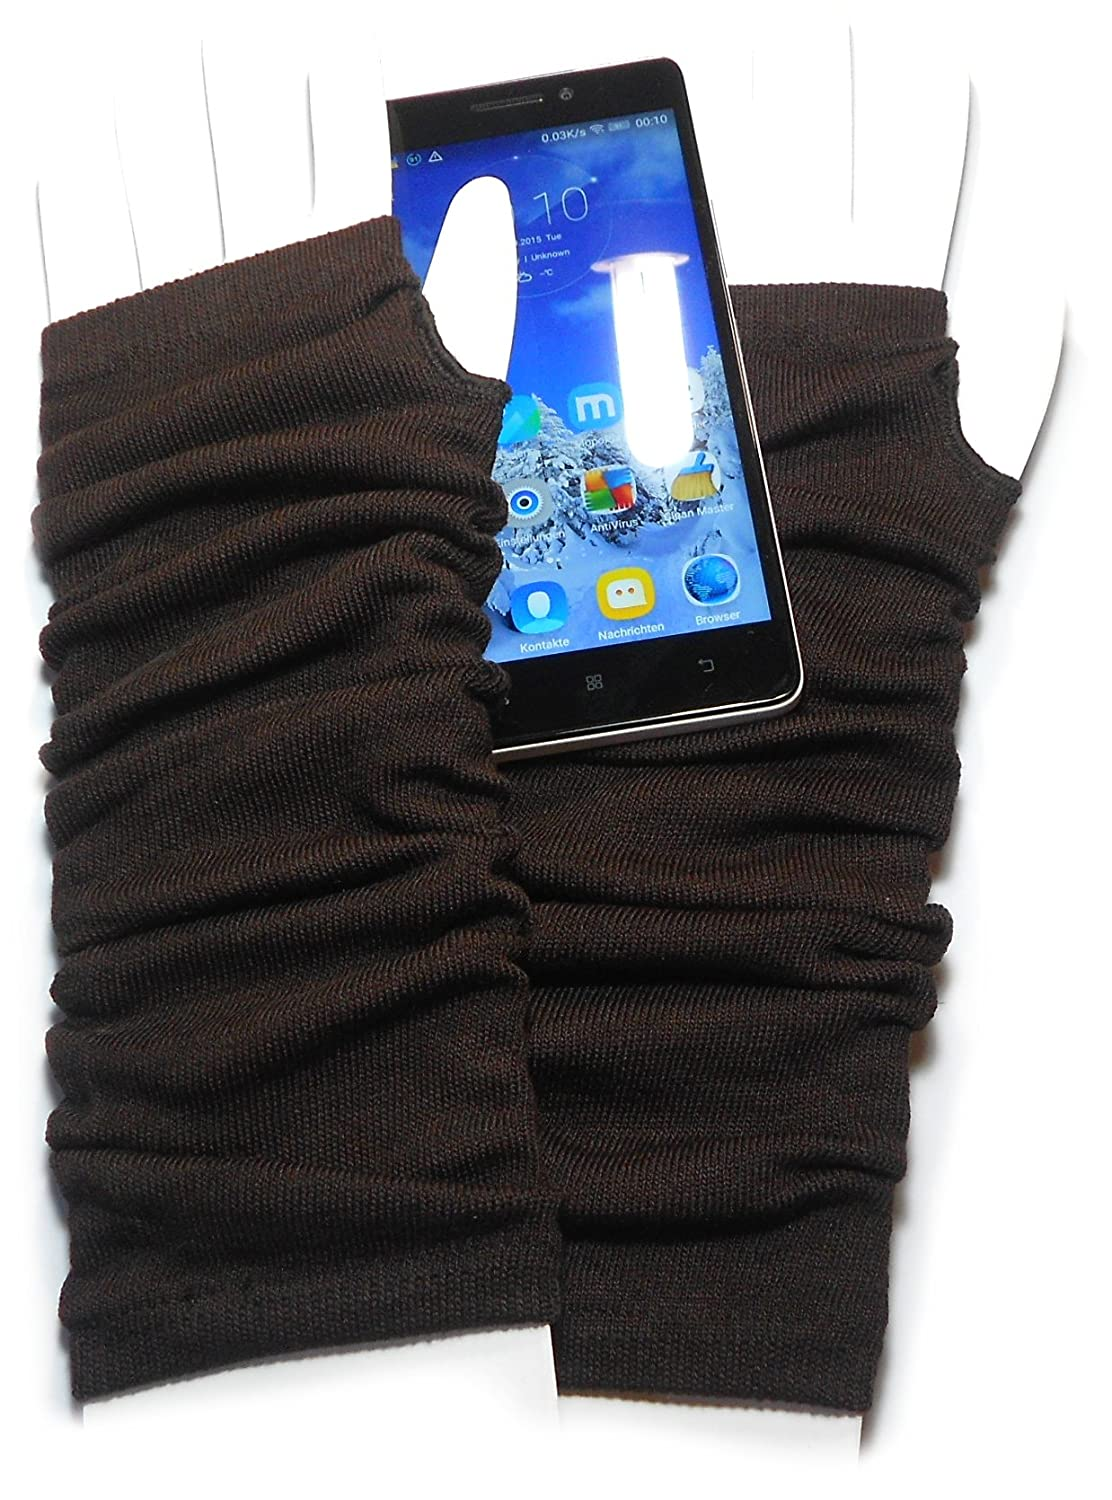 PRESKIN - Stylish Cuff gloves, Cool - but warm, Gloves long, for more tact for Smartphone's, Navi, Tablet ... GloveUniBlack